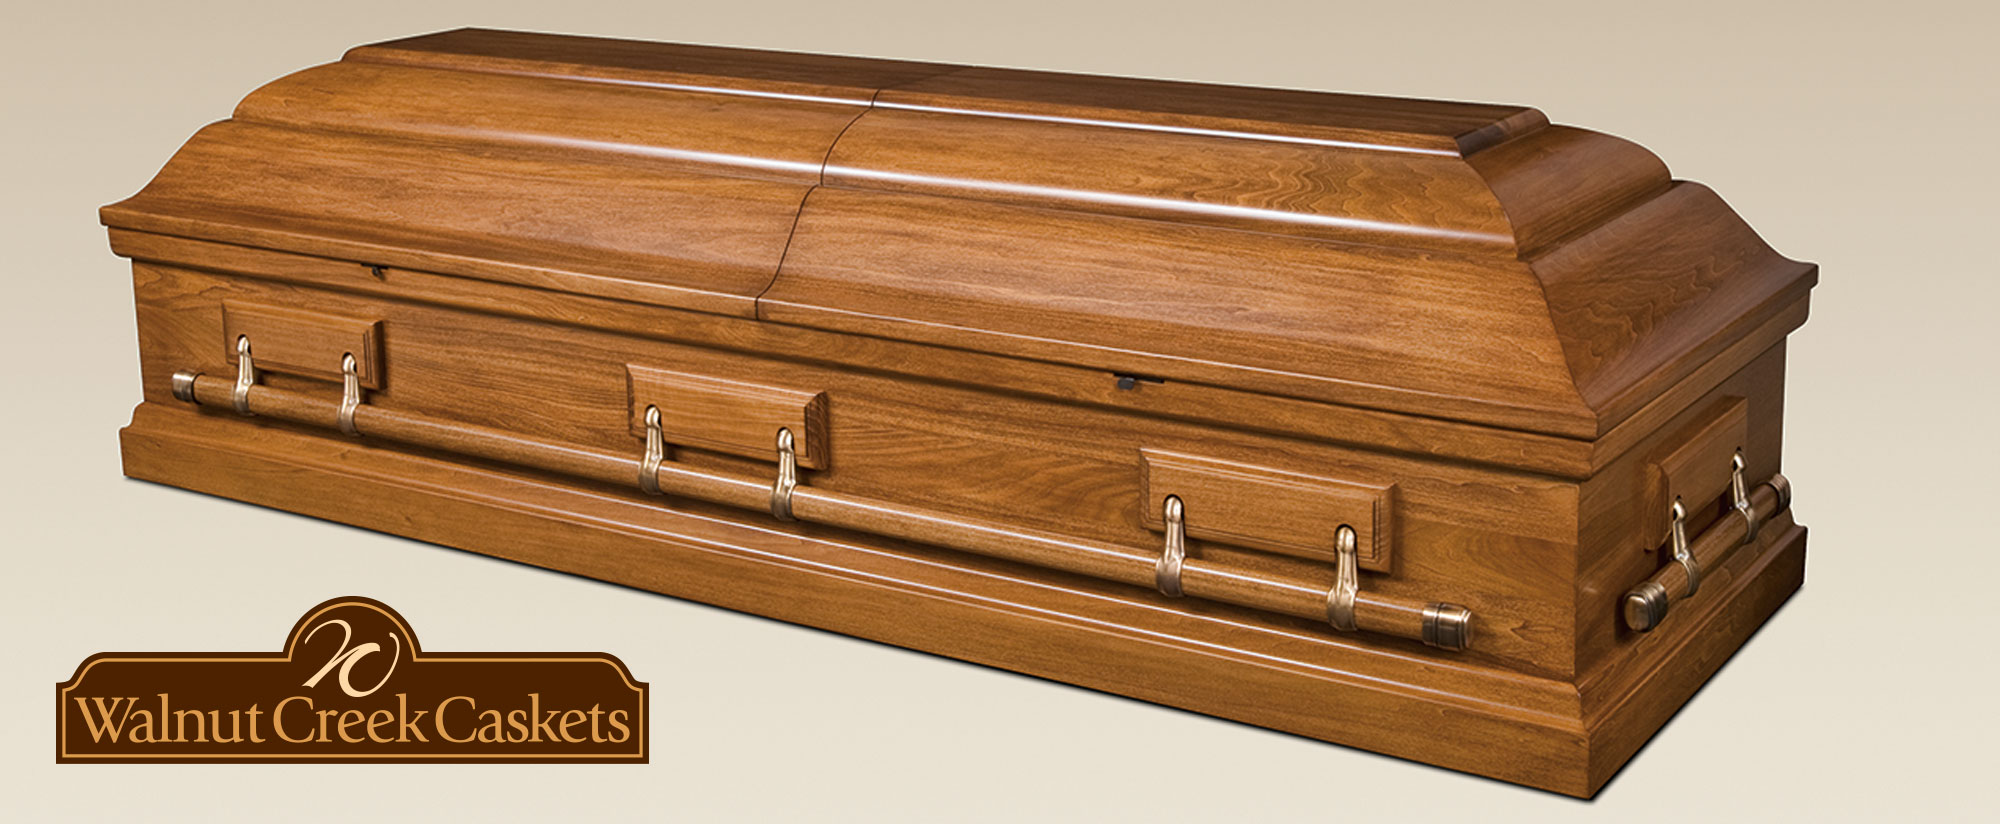 Solid Wood Casket Manufacturer - Quality Built